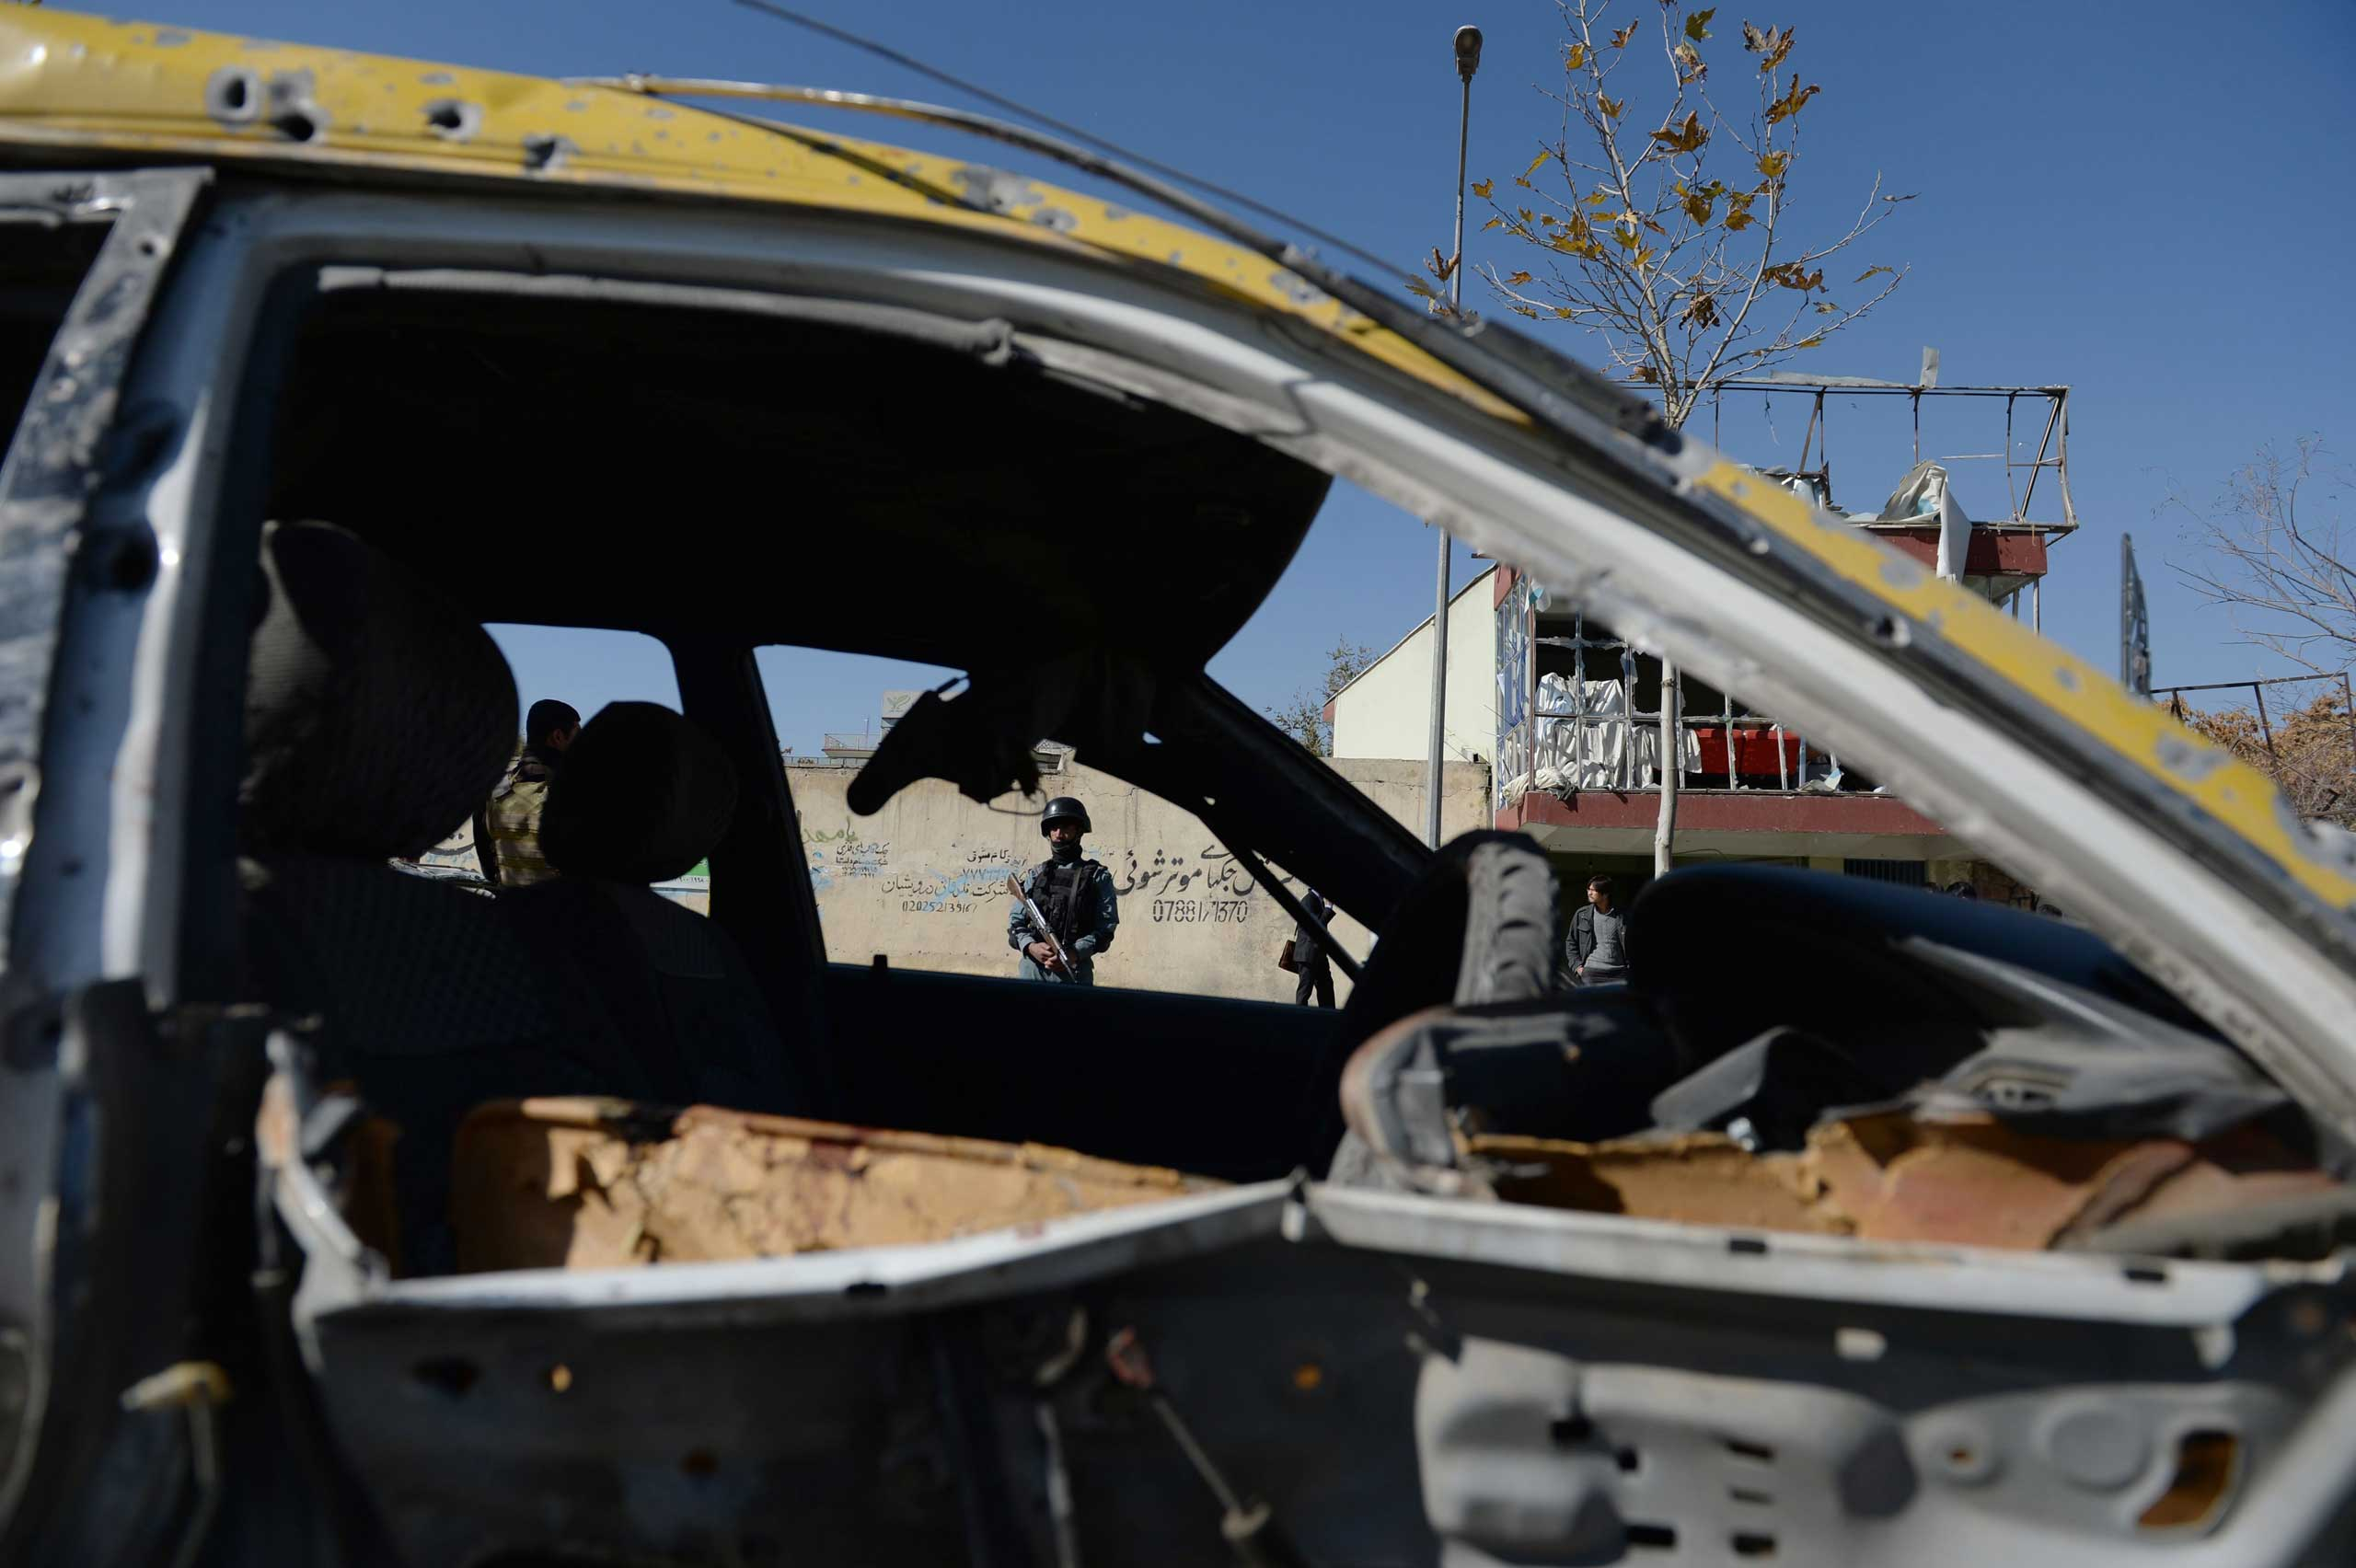 An Afghan policeman is seen through the wreckage of a taxi which was destroyed by a suicide attack targeting a vehicle convoy of Afghan lawmakers in Kabul, Afghanistan on Nov. 16, 2014.